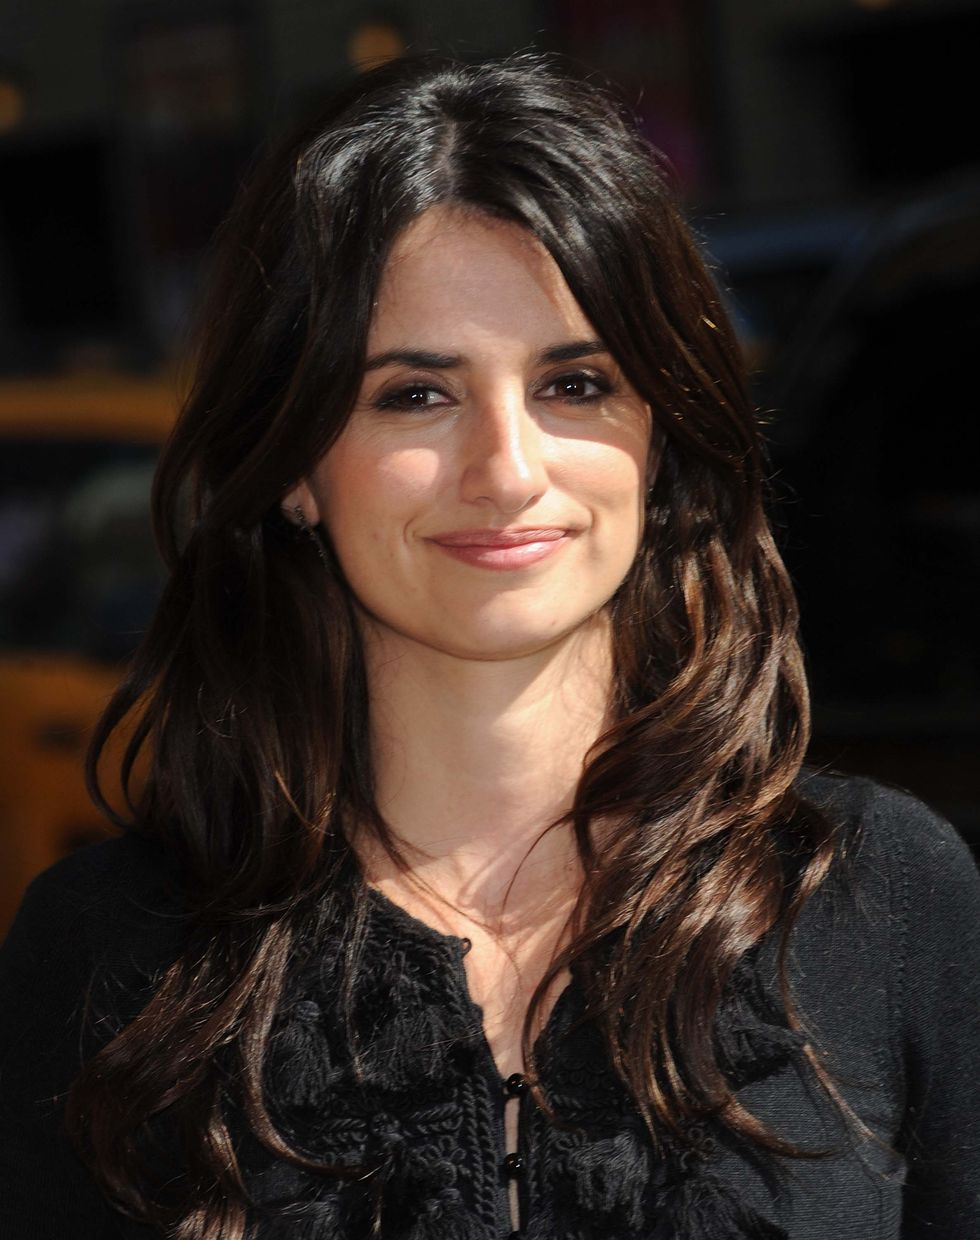 penelope-cruz-at-the-late-show-with-david-letterman-in-new-york-city-01